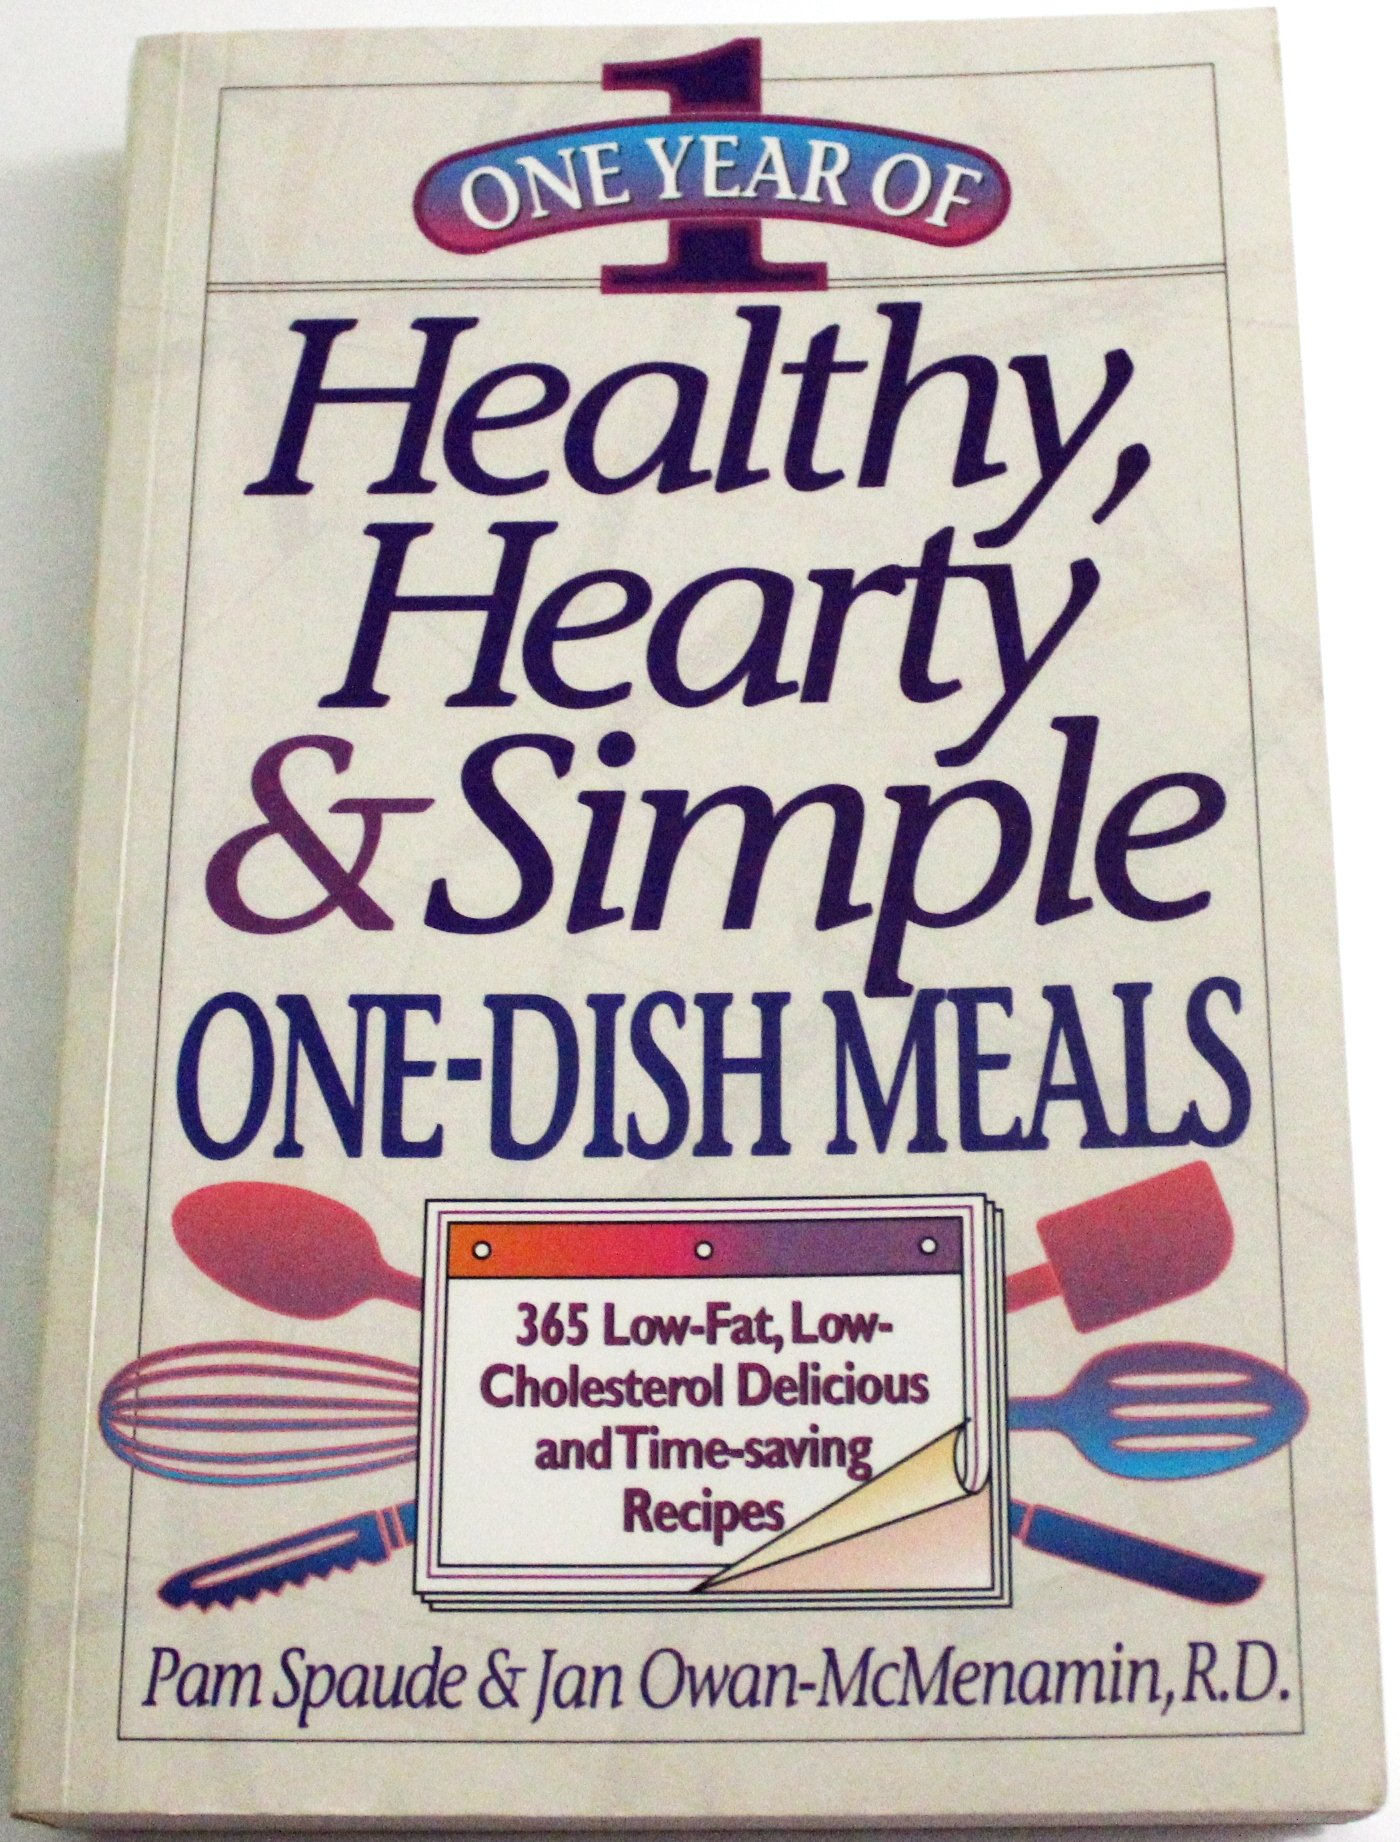 One Year of Healthy, Hearty & Simple One-Dish Meals: 365 Low-Fat, Low-Cholesterol Delicious and Time-Saving Recipes by Chronimed Pub